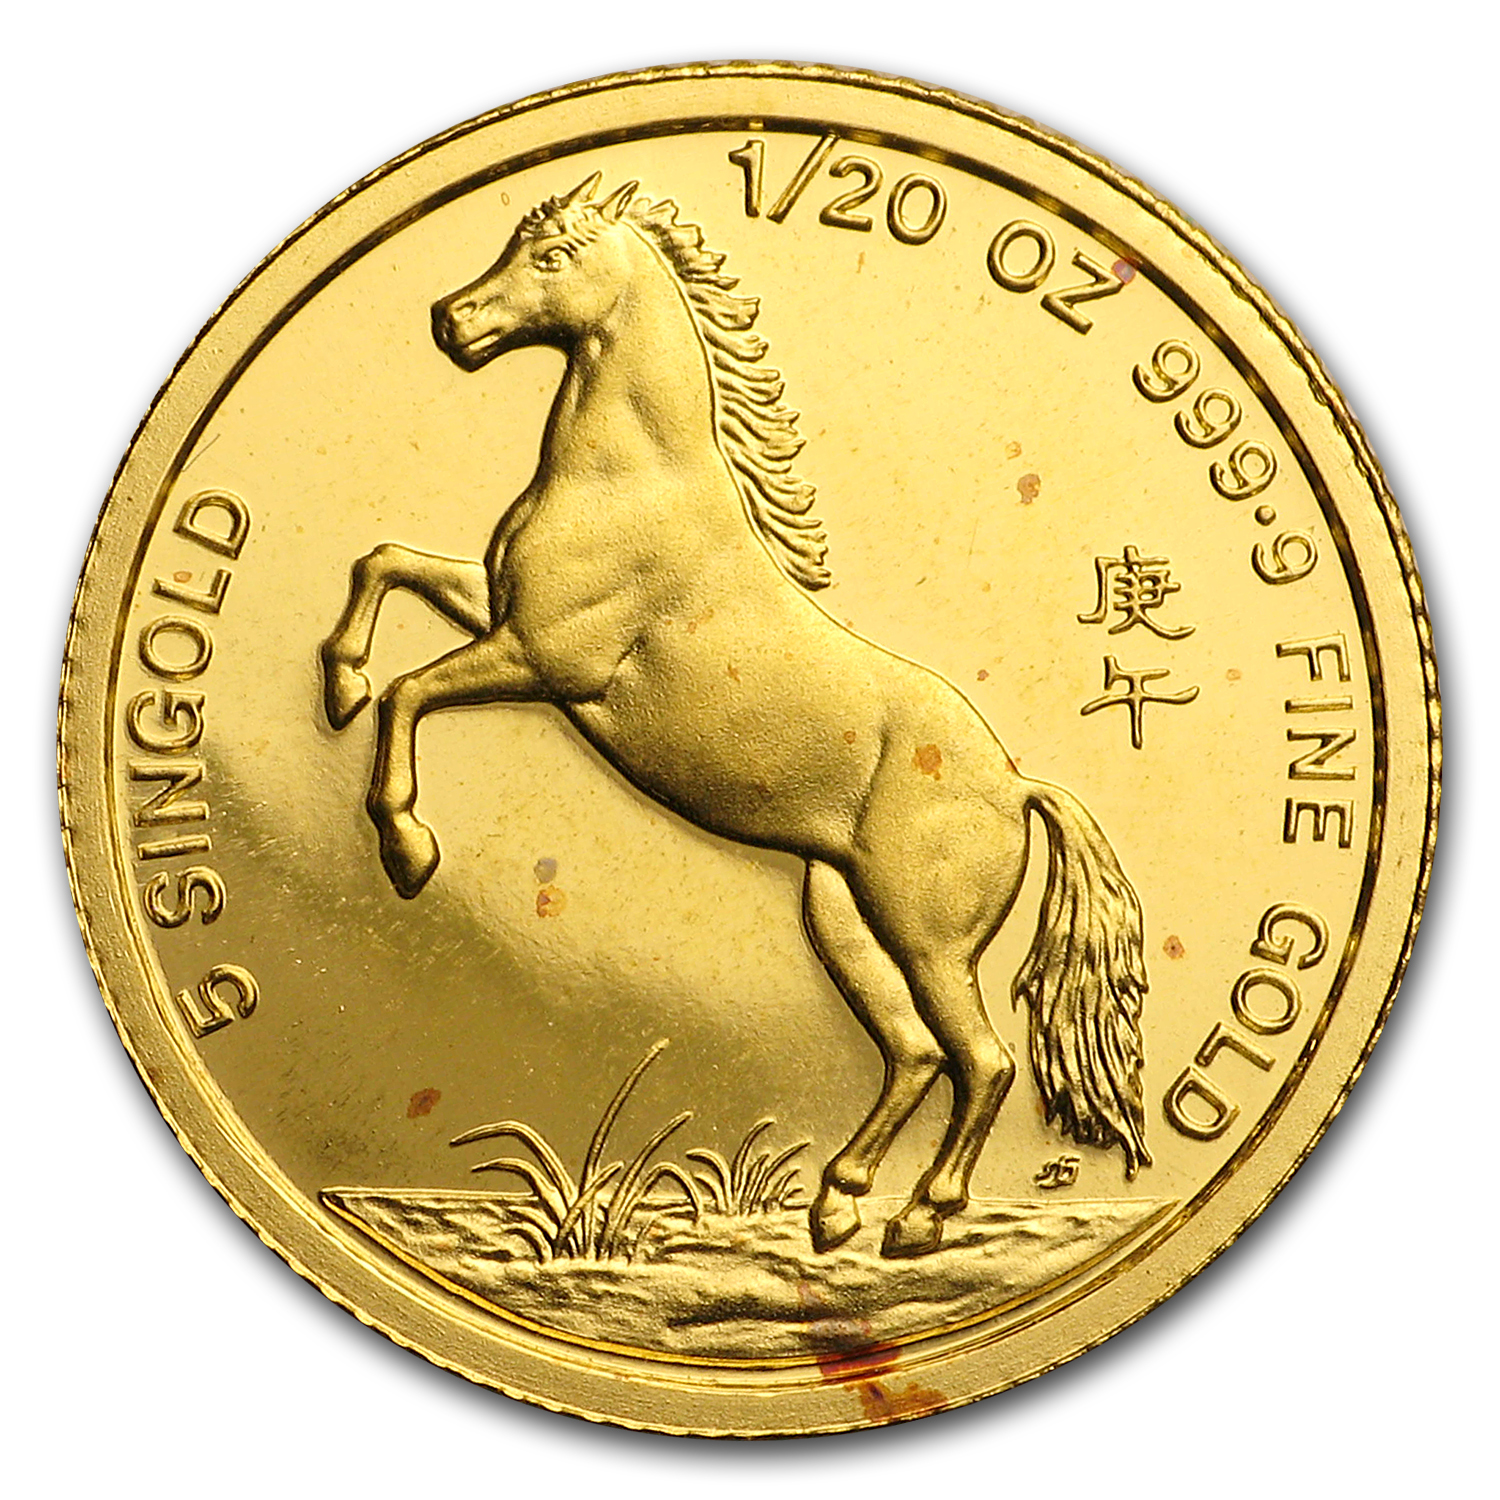 1990 Singapore 1/20 oz Proof Gold 5 Singold Horse